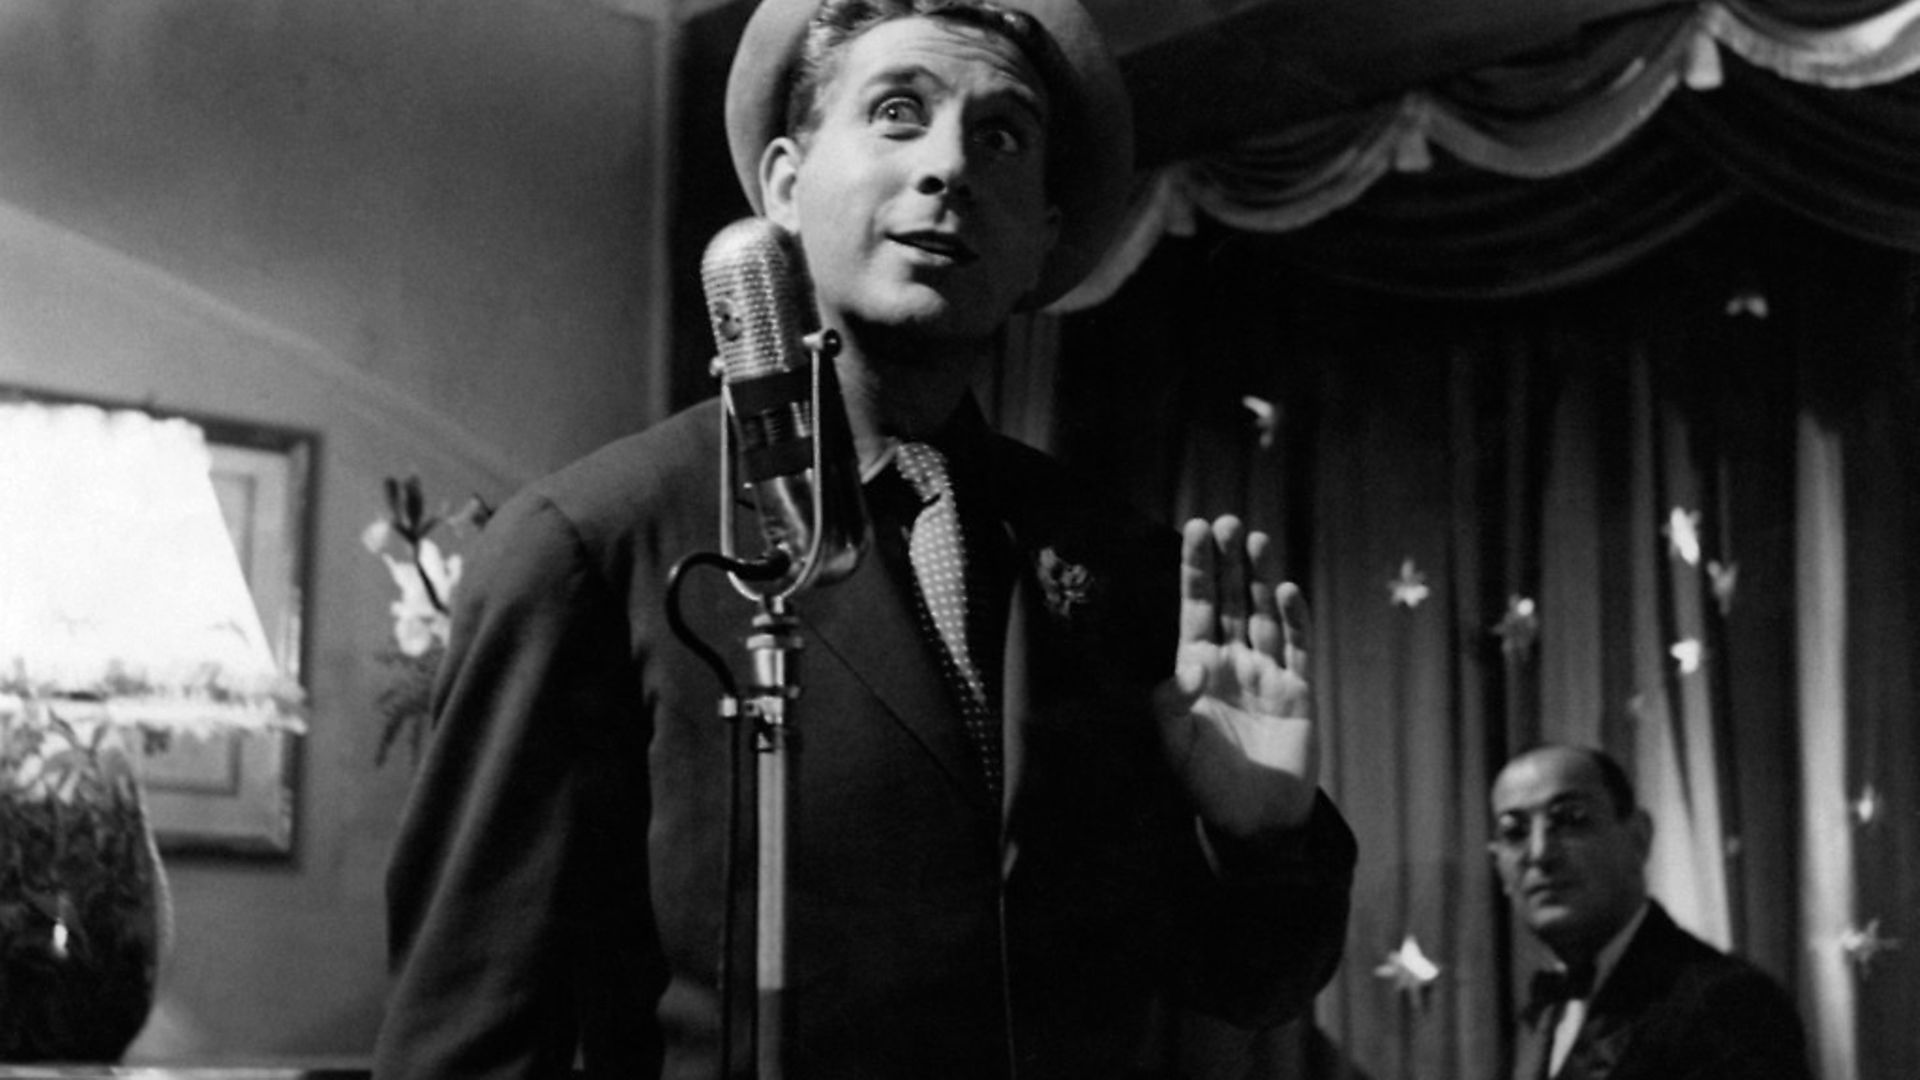 French actor, singer and songwriter Charles Trenet singing in Giovinezza. Italy, 1952 (Photo by Mondadori Portfolio by Getty Images) - Credit: Mondadori via Getty Images